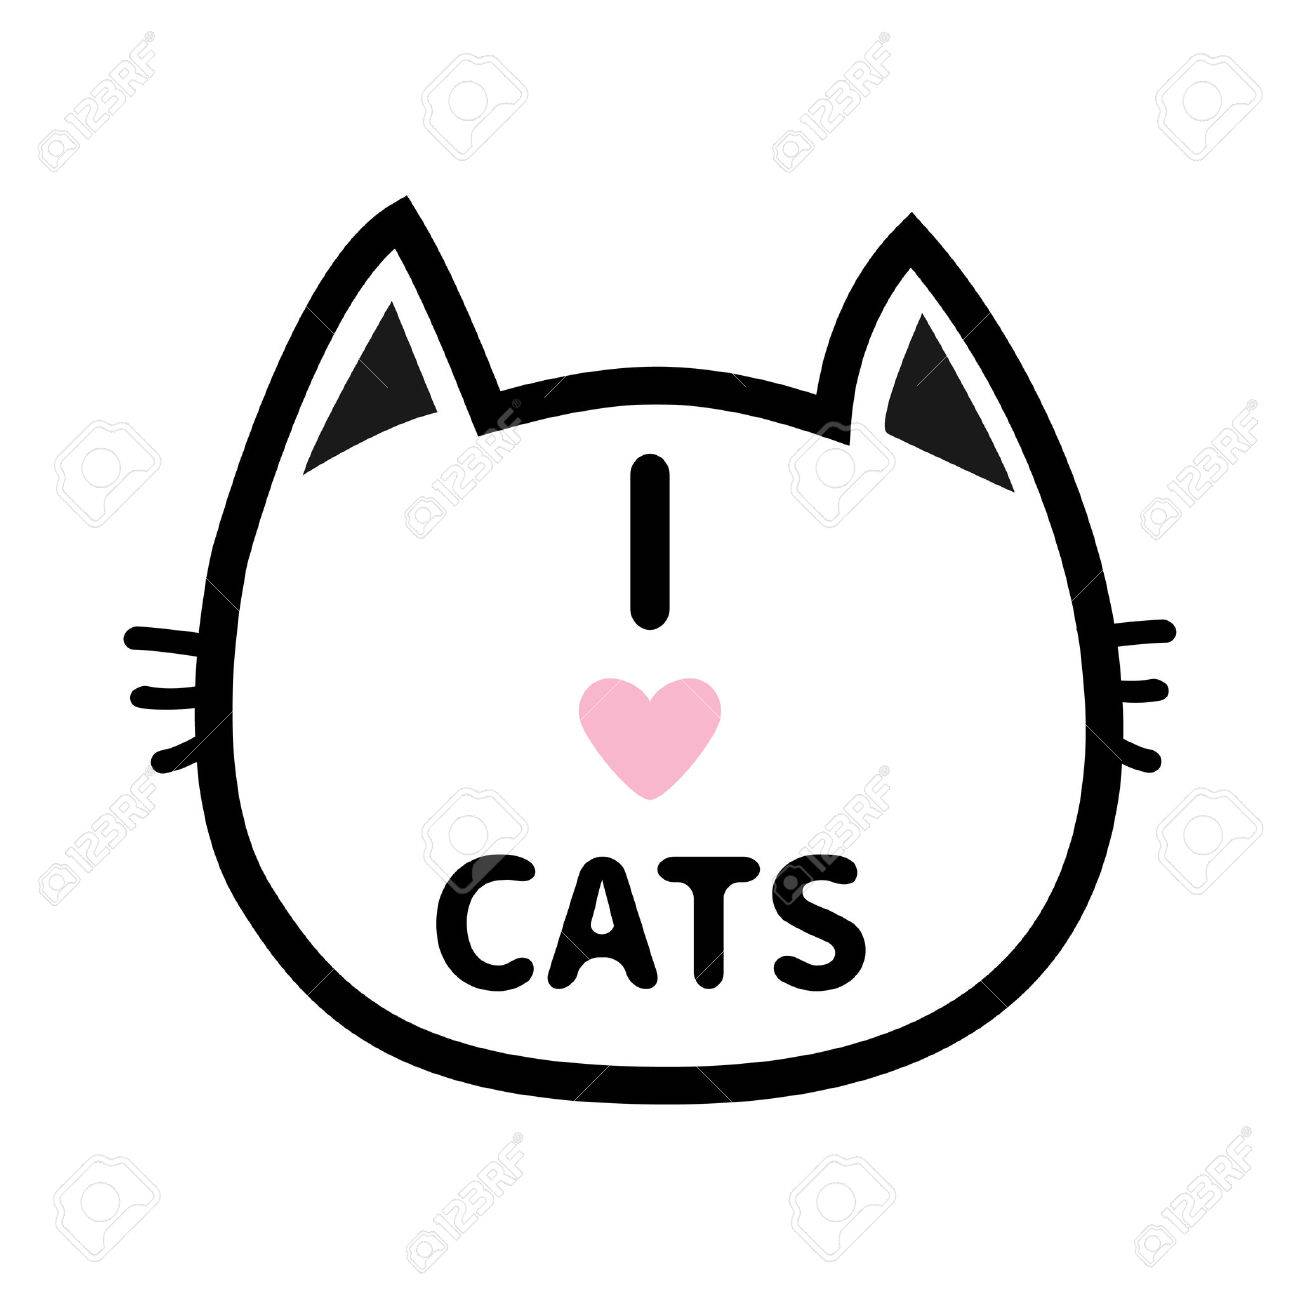 I Love Cats Heart Text Lettering Black Cat Head Face Contour